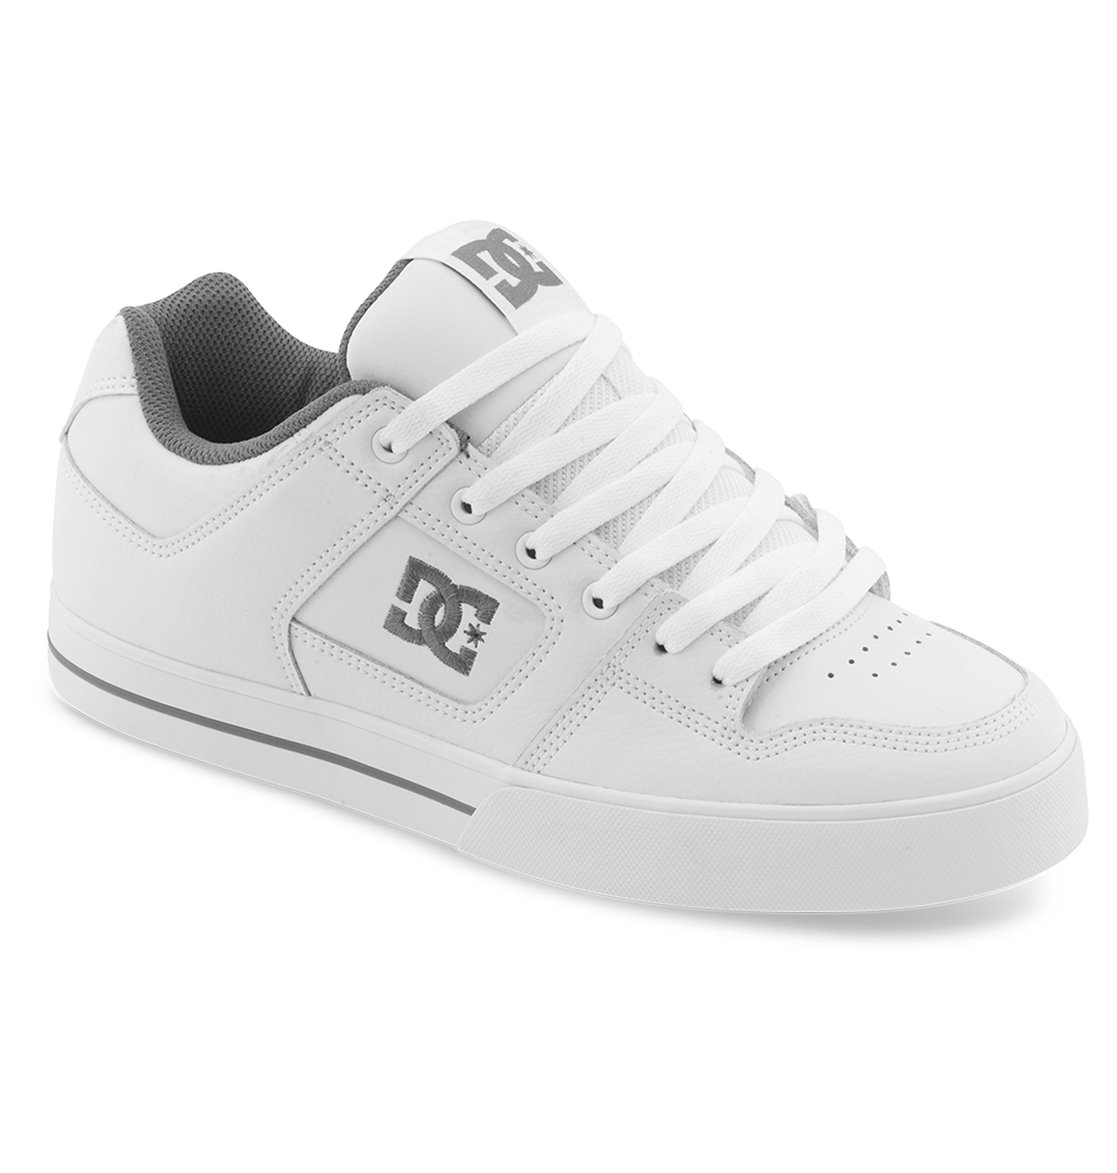 Dc Shoes Chart Size